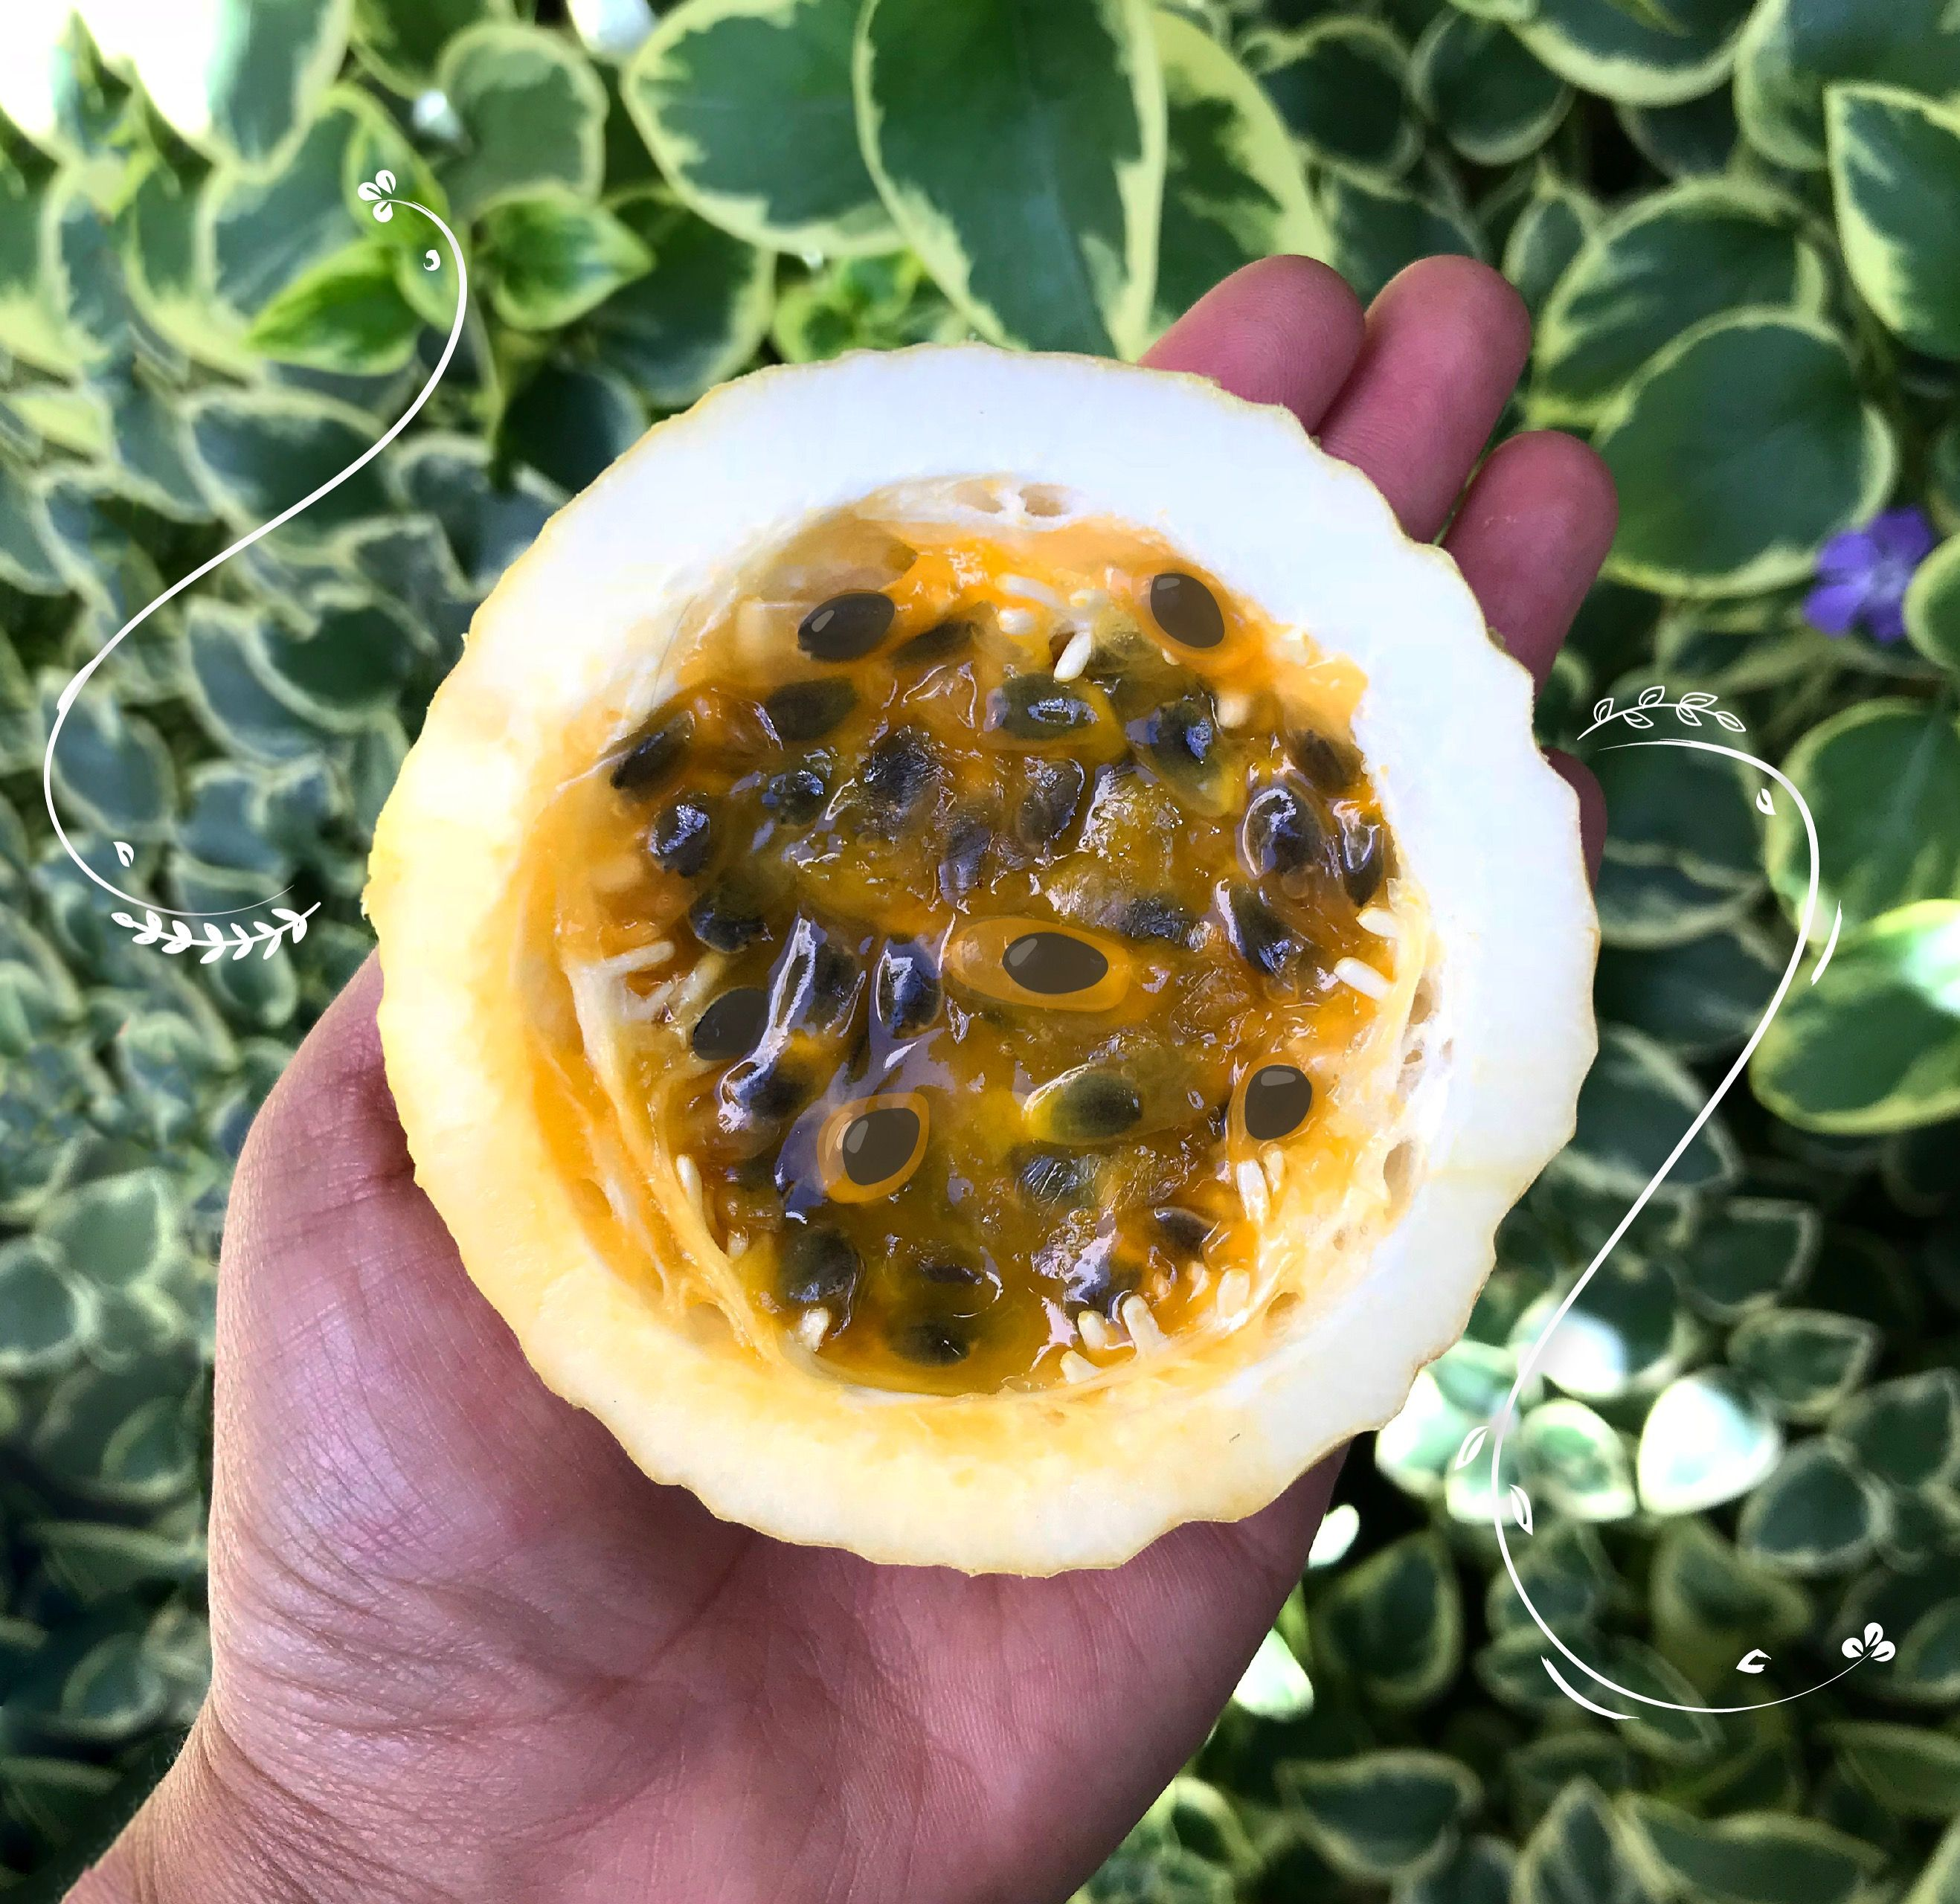 PASSION FRUIT FACTS🧡 The name of passion fruit is due to